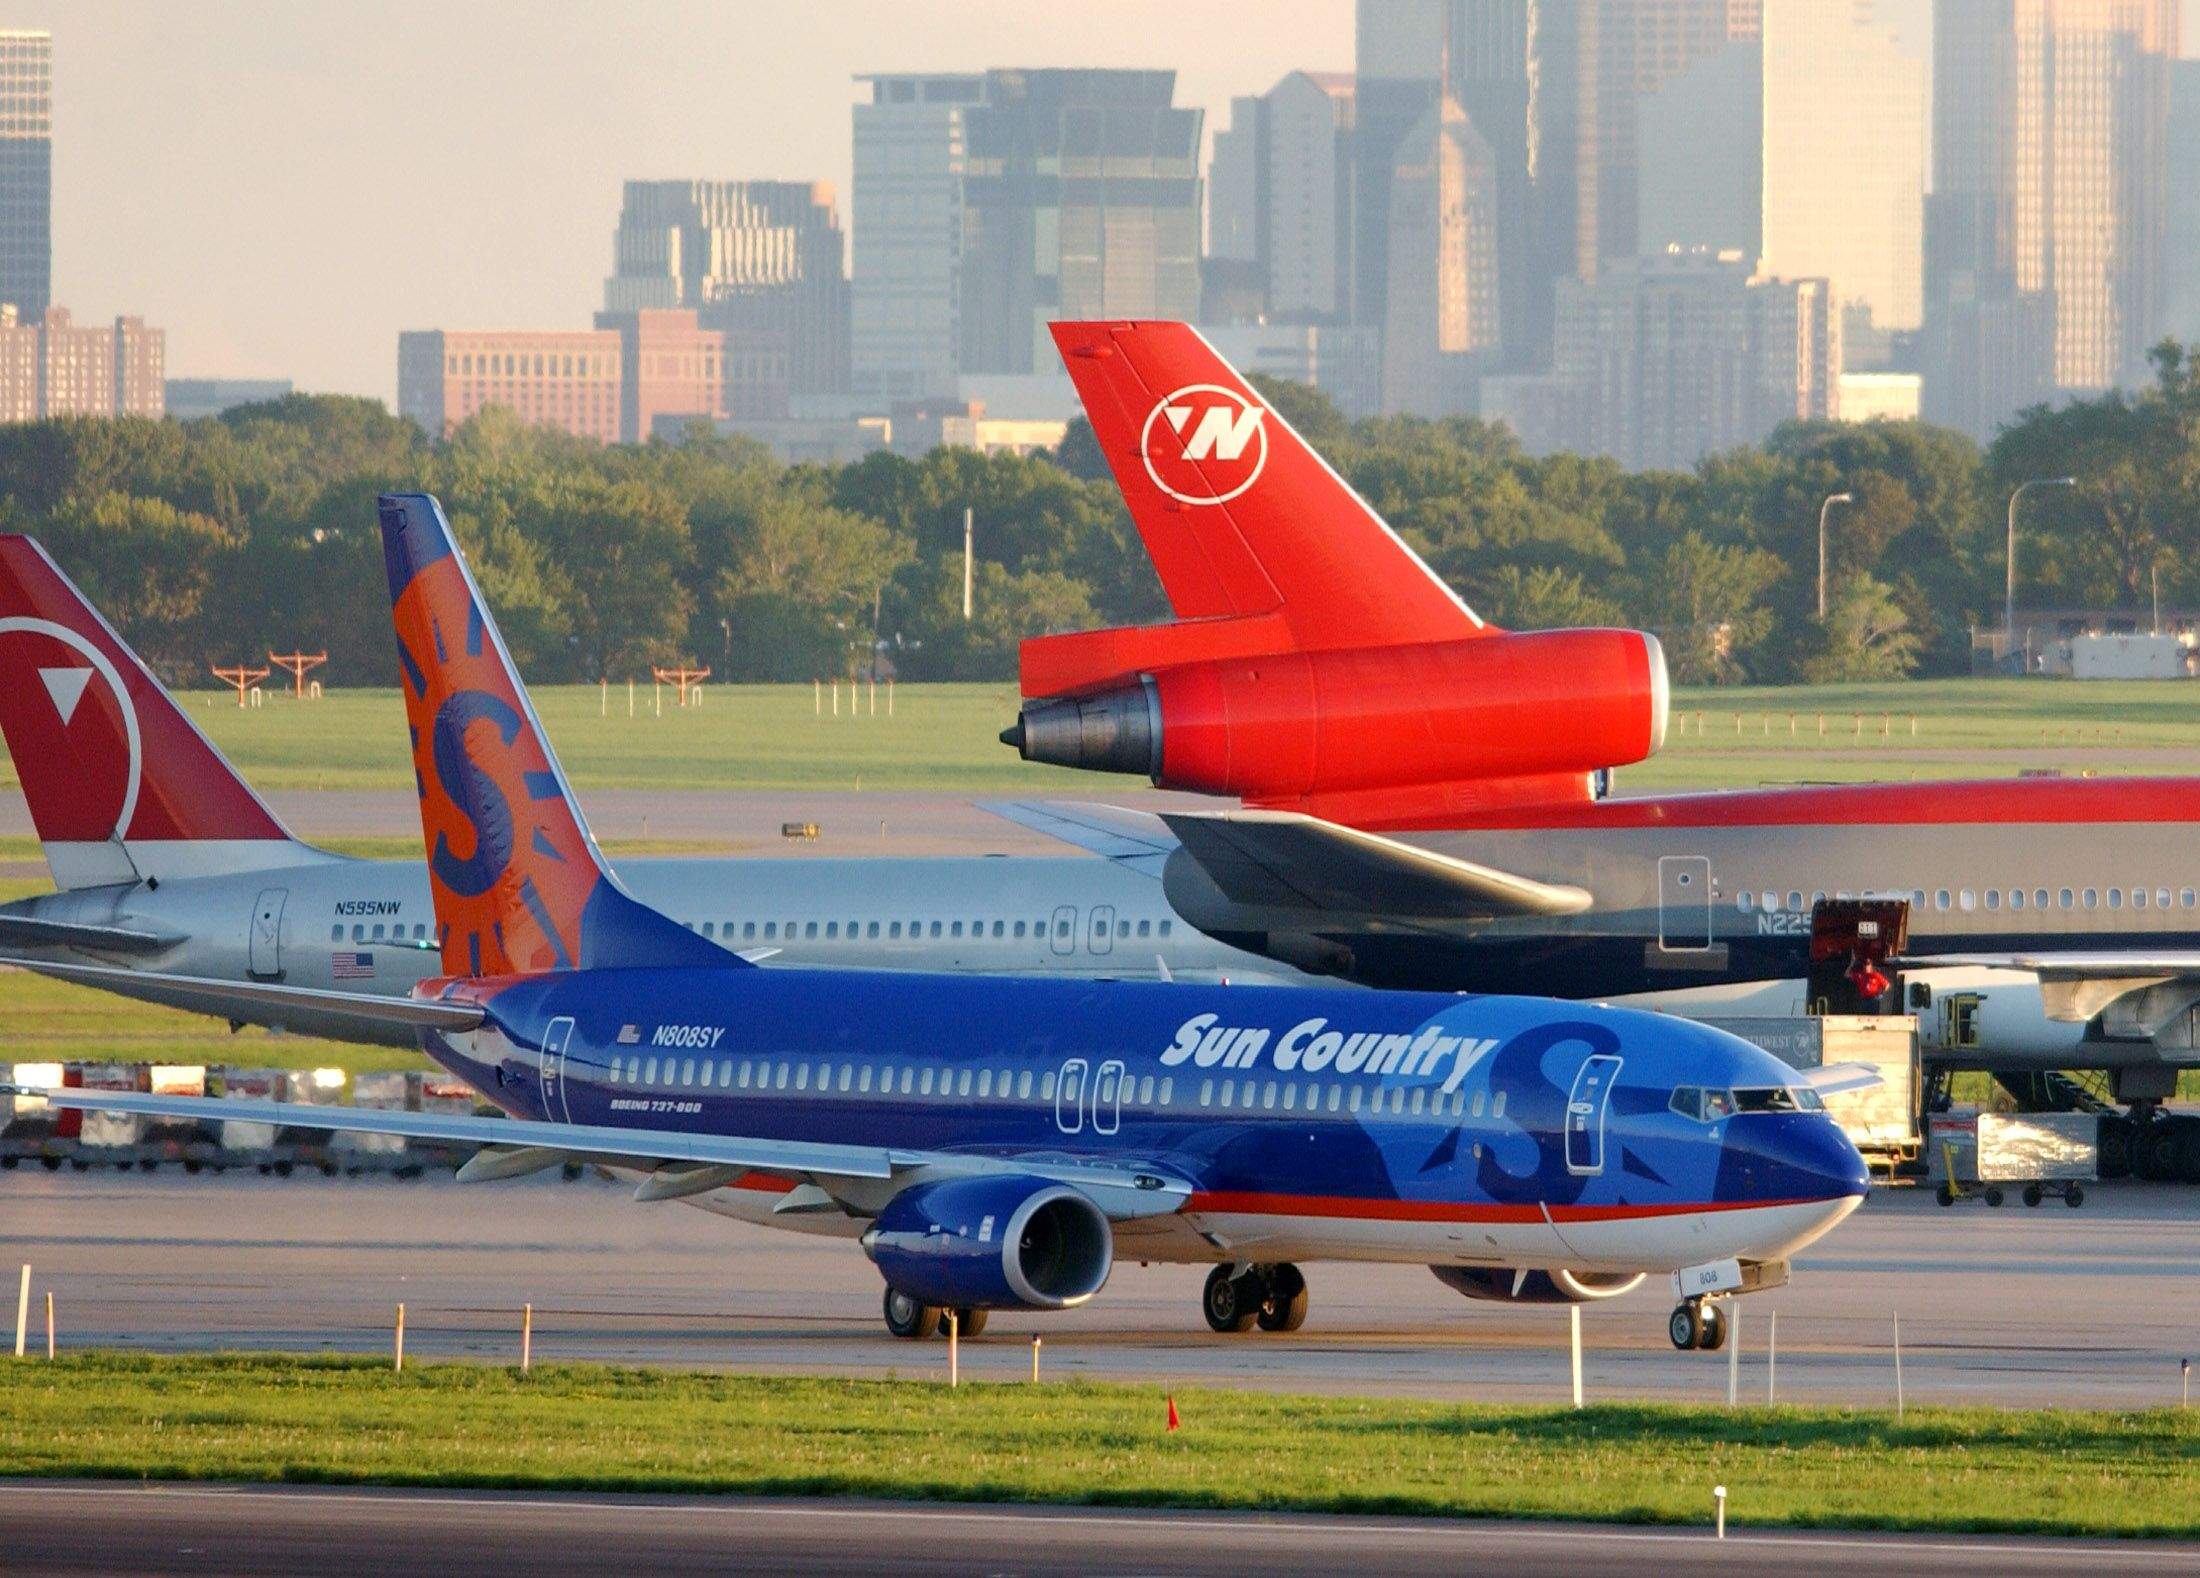 A Sun Country Airlines Boeing 737-800